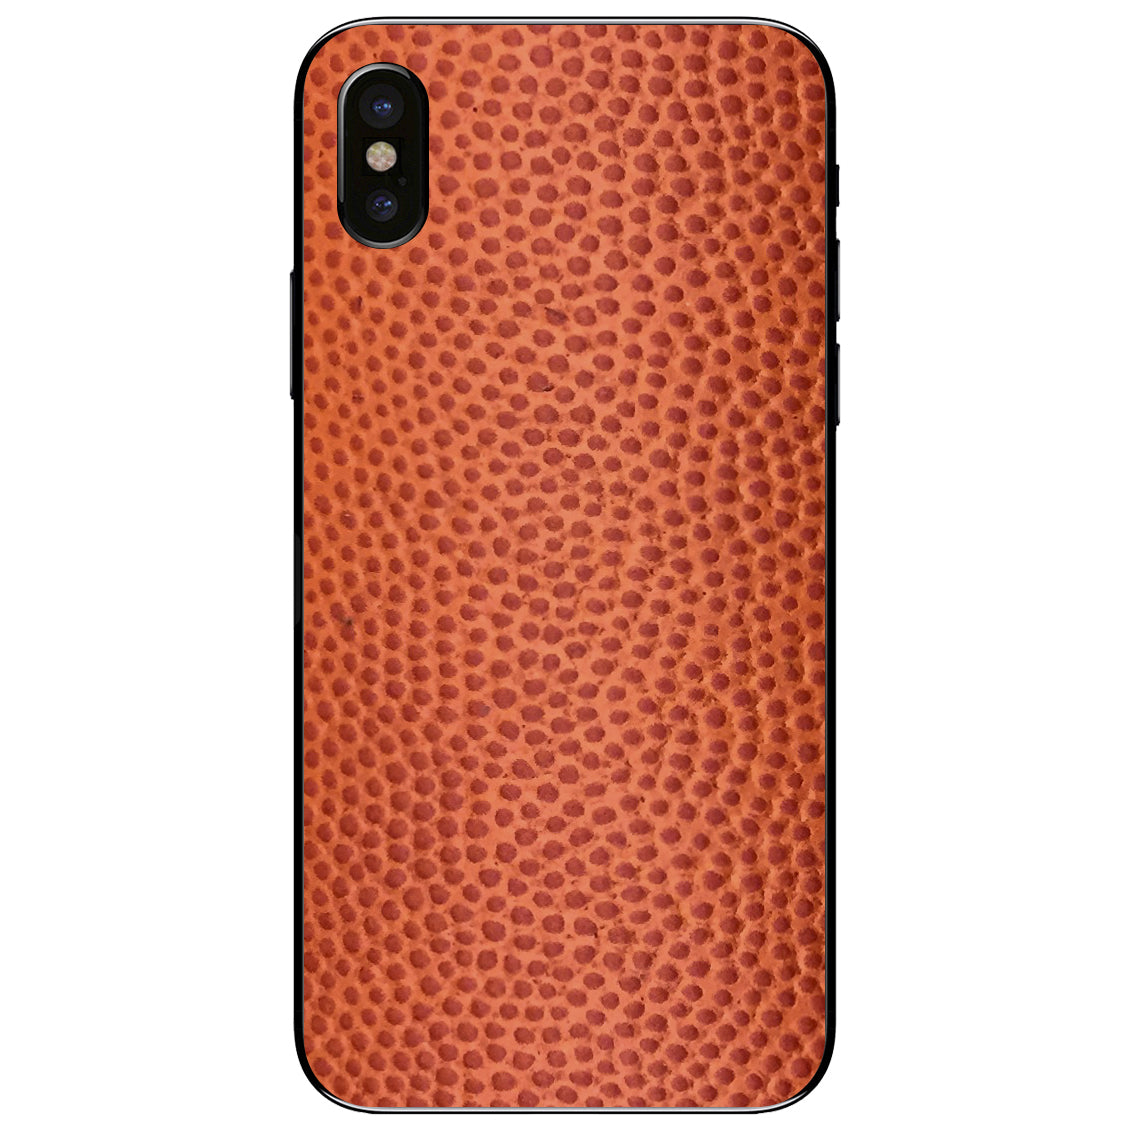 Horween Basketball iPhone X Leather Skin